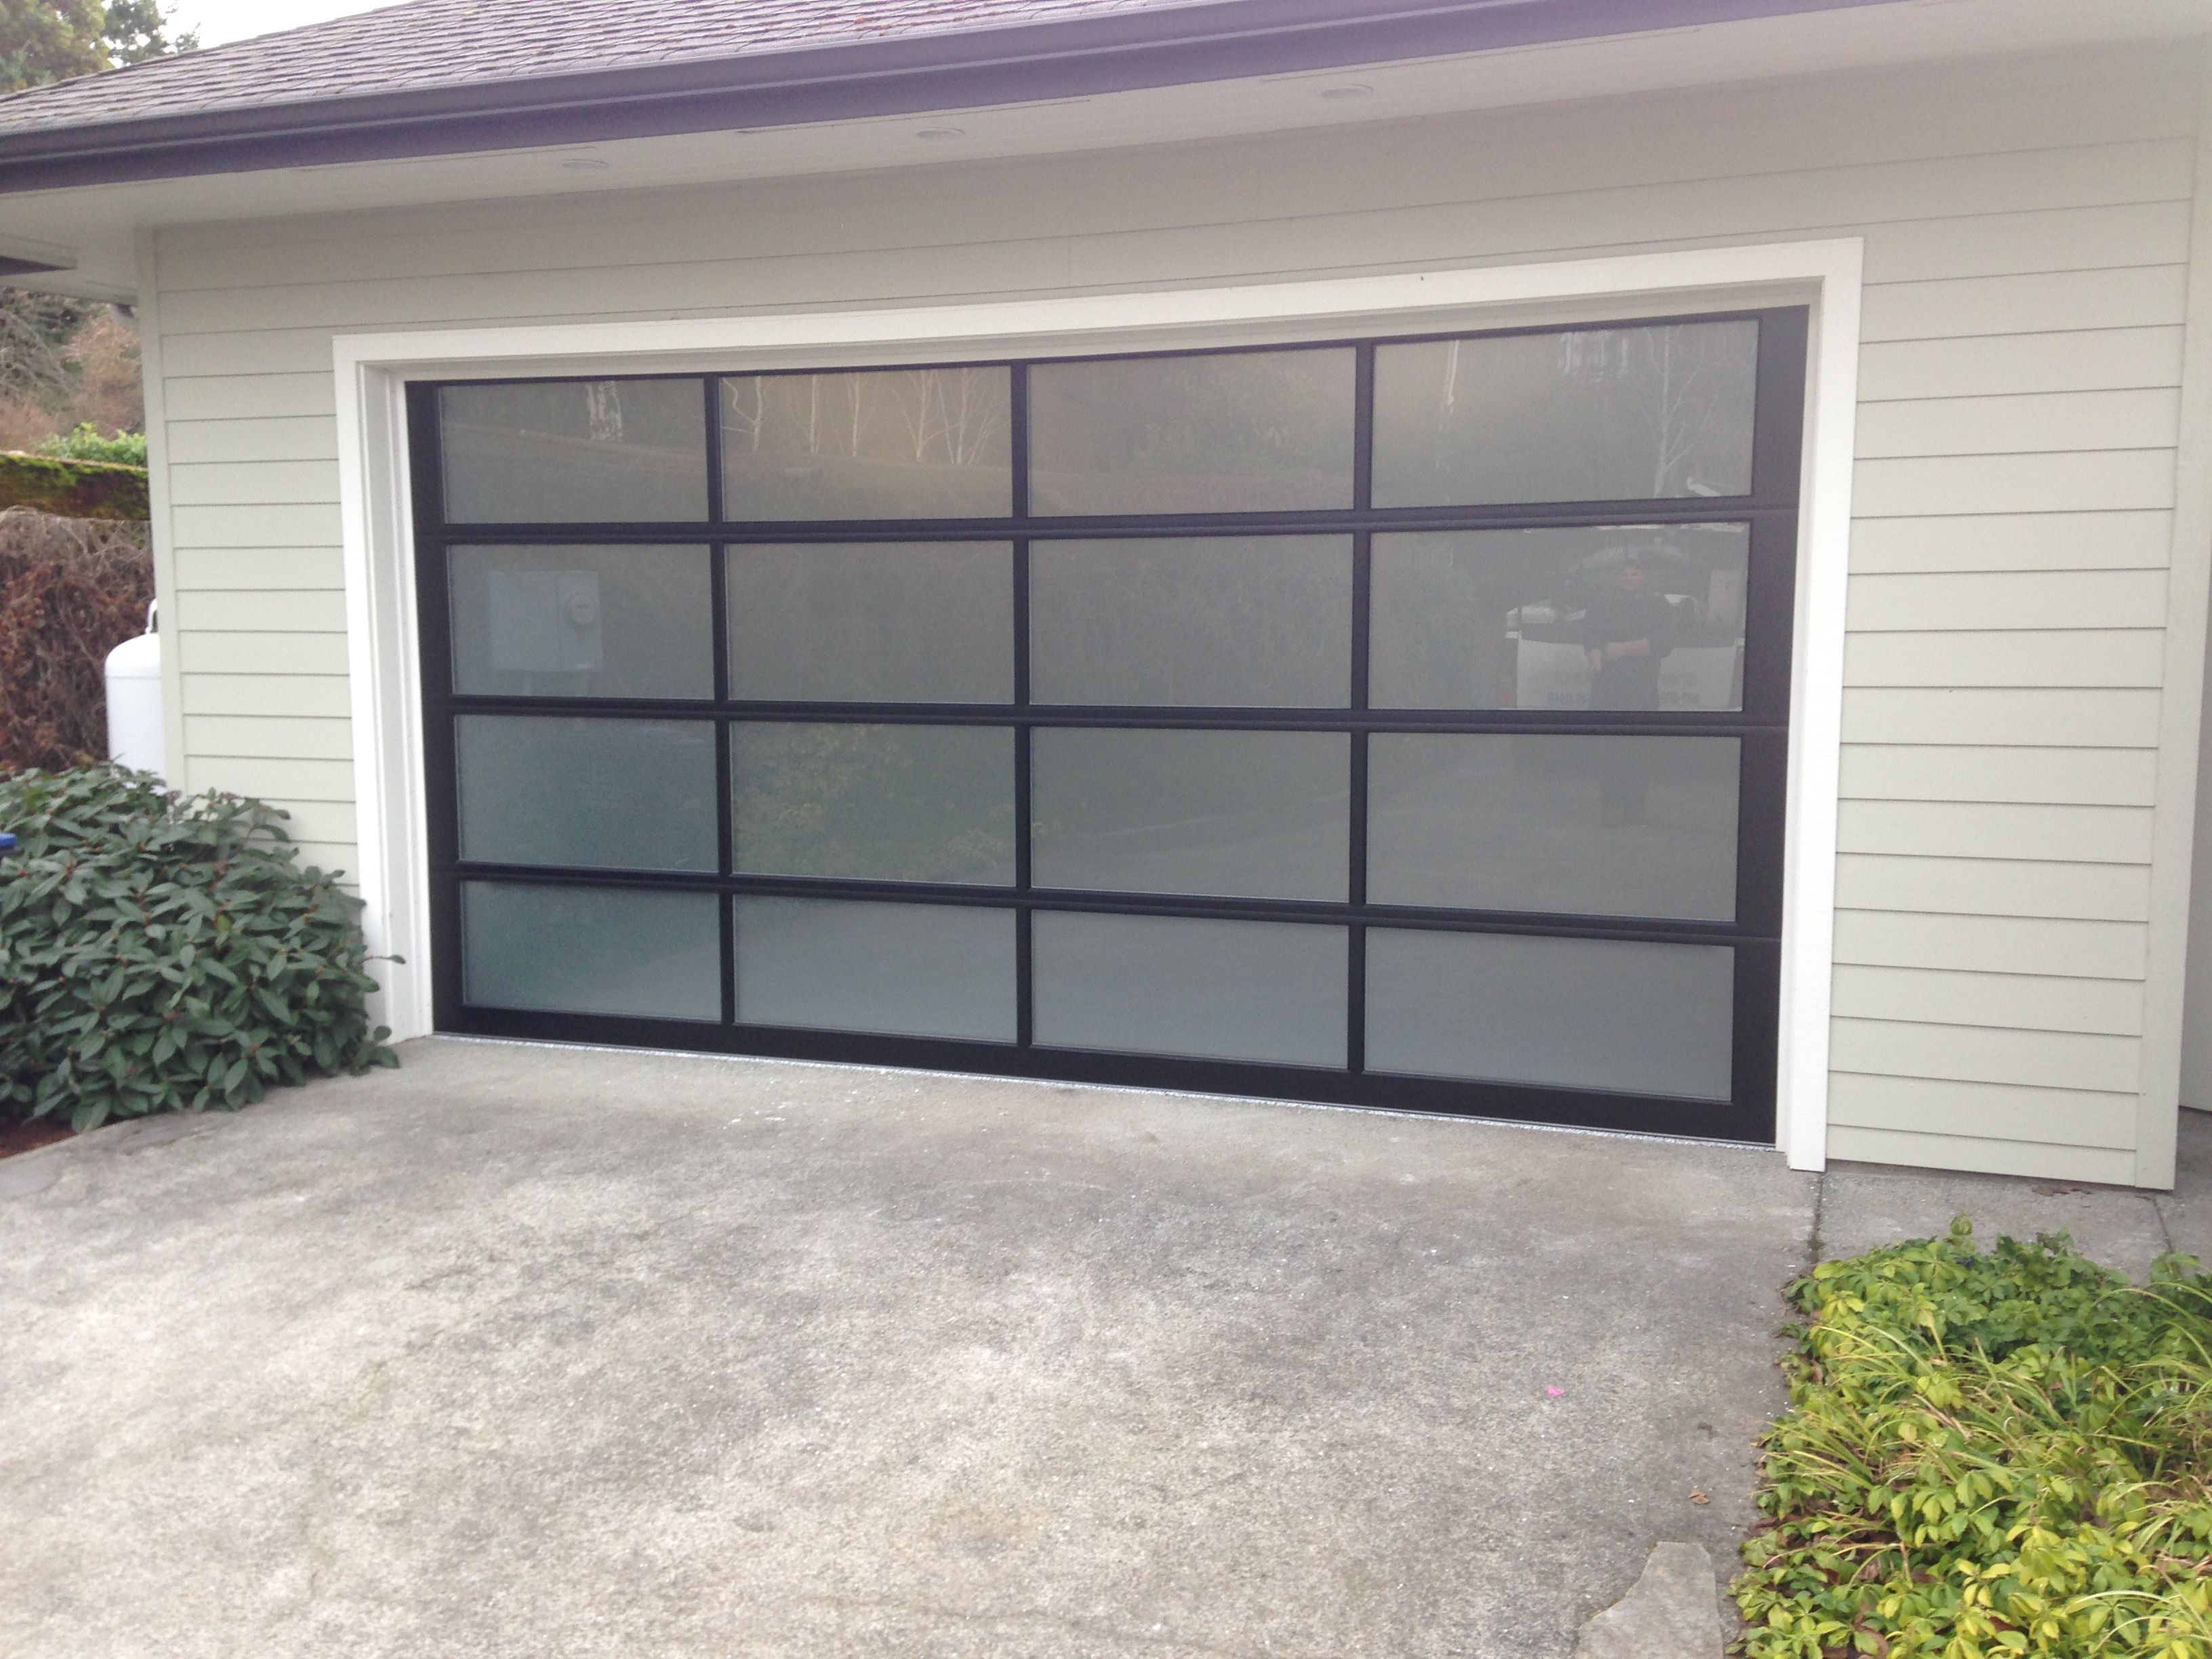 Beautiful Avante Doors With Frosted Glass Installed By Kitsap Garage Door In Bremerton Wa Kitsapgar Garage Doors Glass Garage Door Garage Door Installation